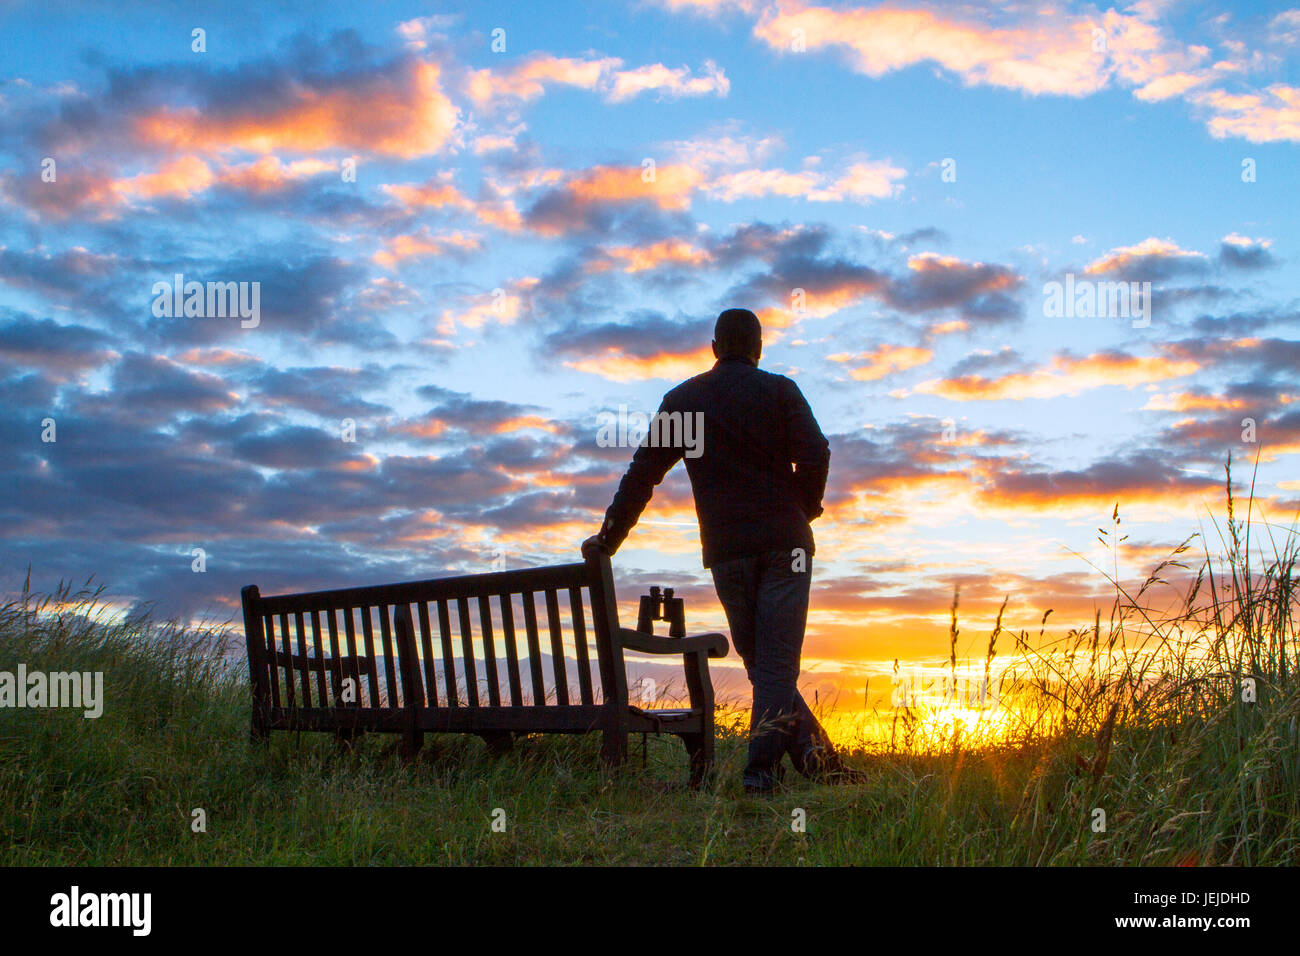 Southport, Merseyside, 26th June 2017. UK Weather. An early morning birdwatcher observes a beautiful sunrise during Stock Photo